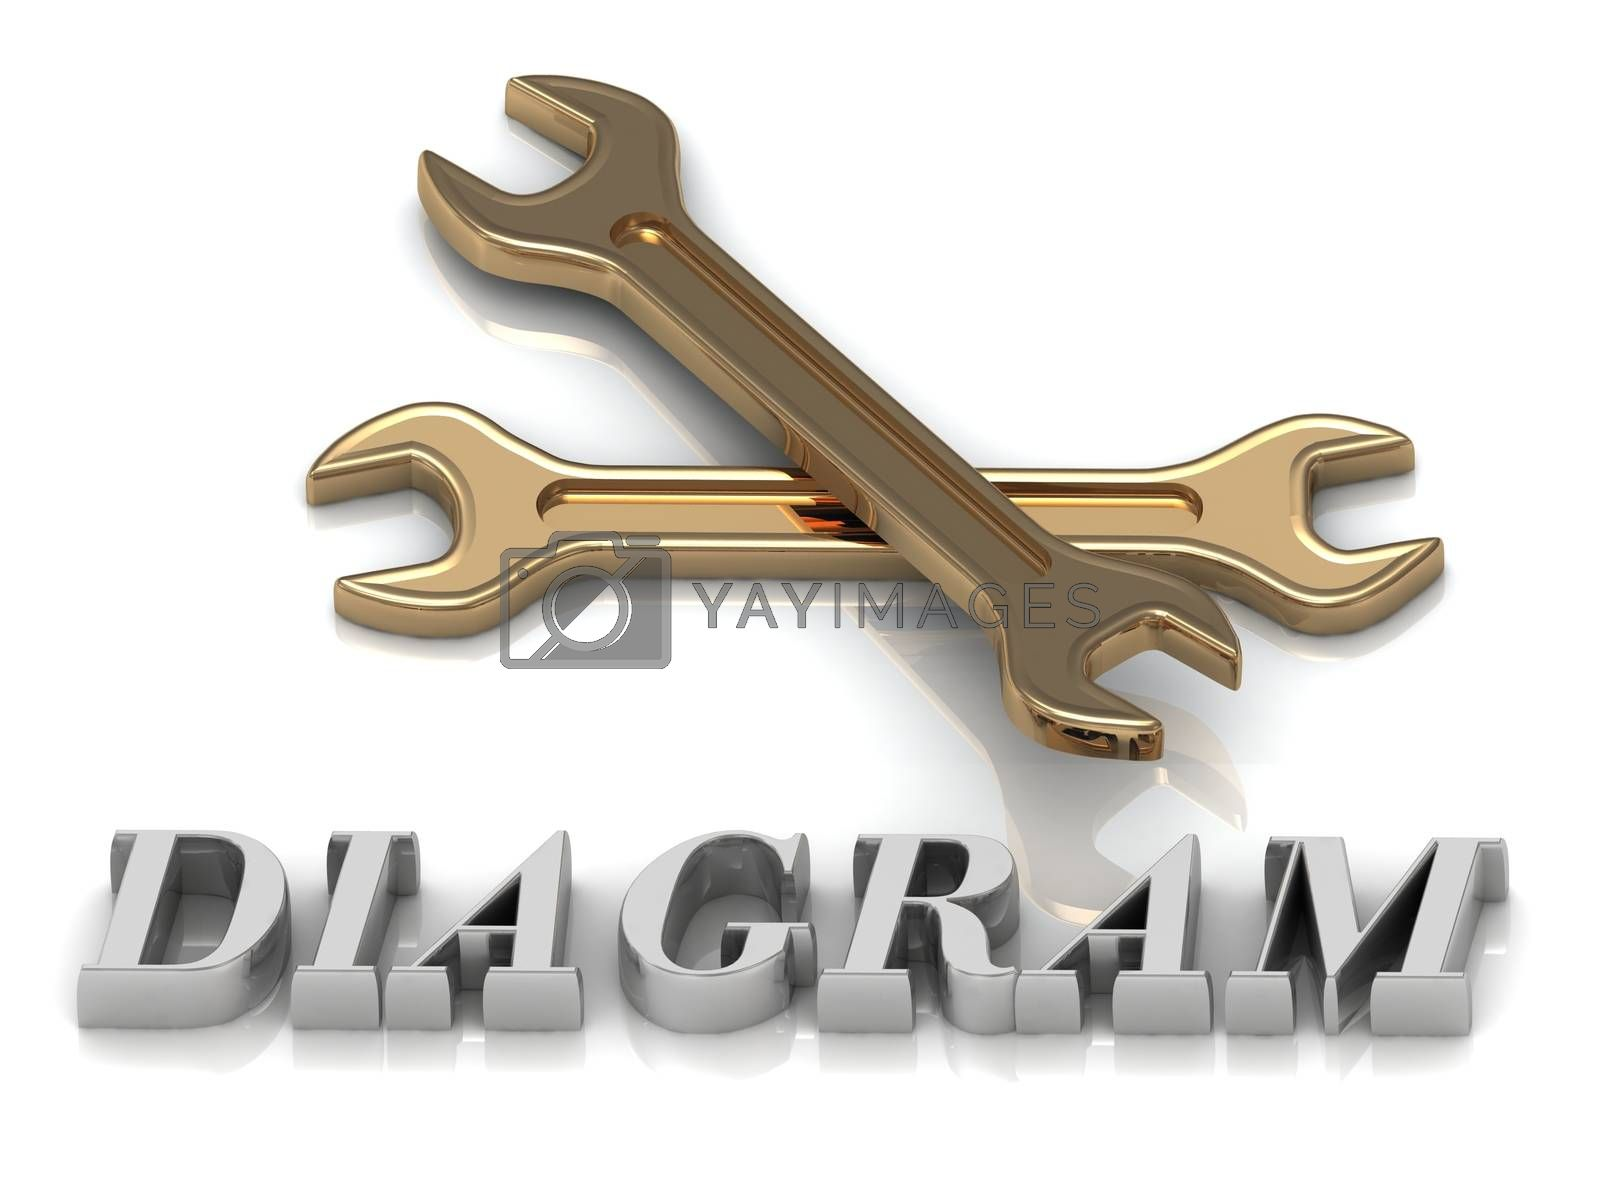 DIAGRAM- inscription of metal letters and 2 keys on white background